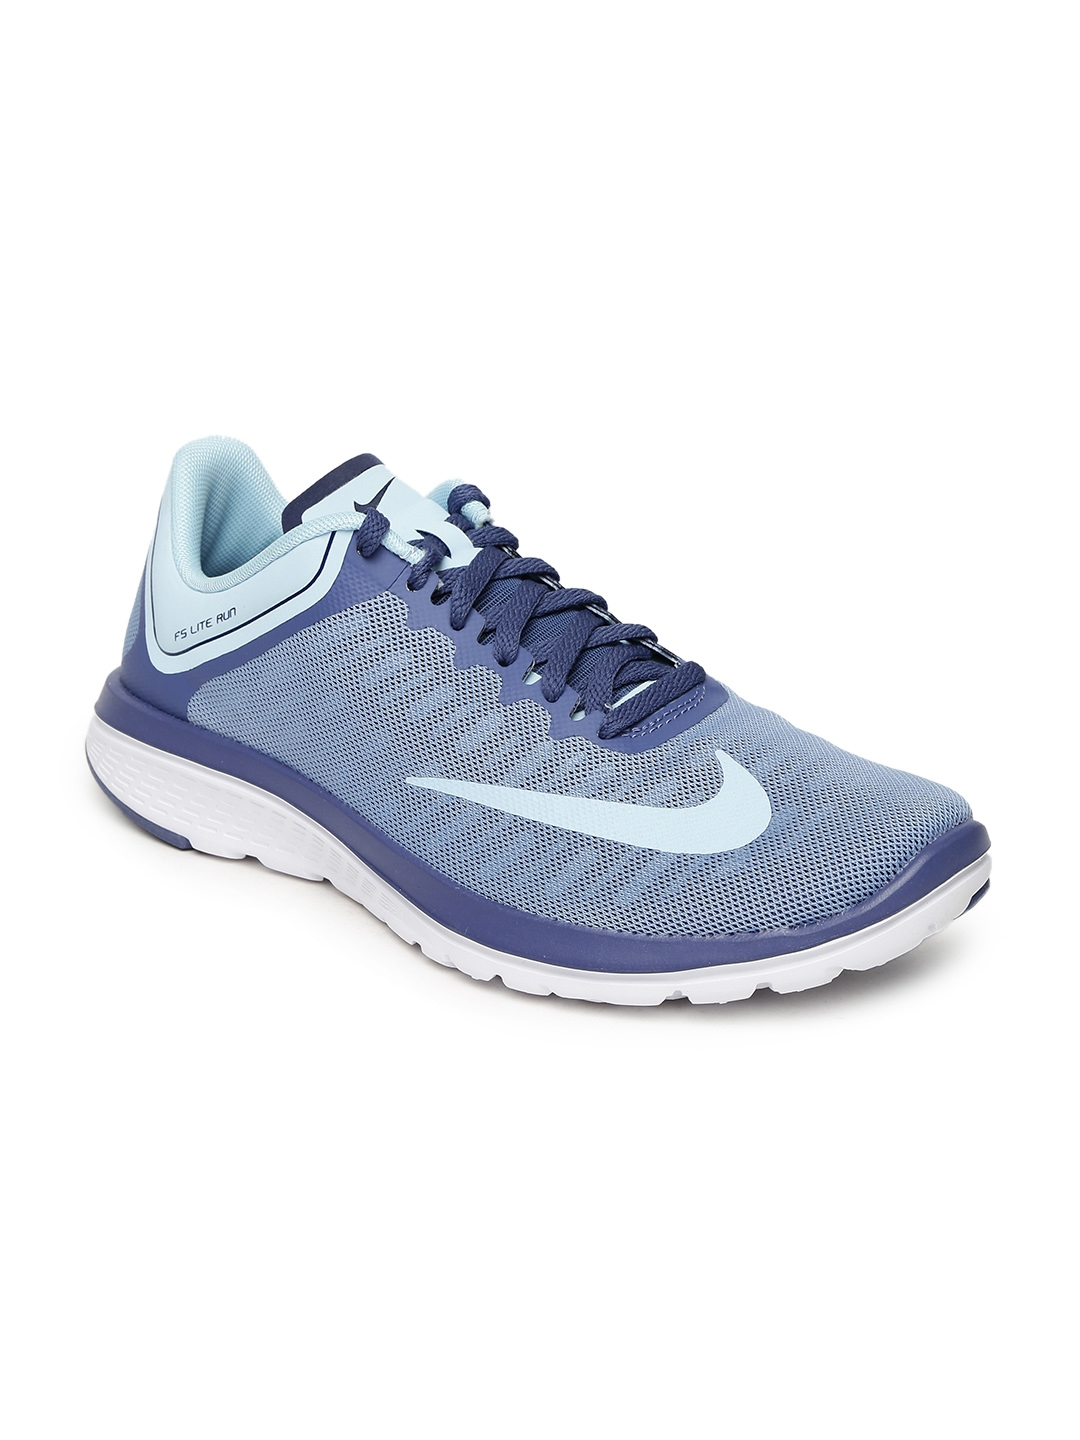 400bf0747c7c Buy Nike Women Blue FS LITE RUN 4 Running Shoes - Sports Shoes for ...